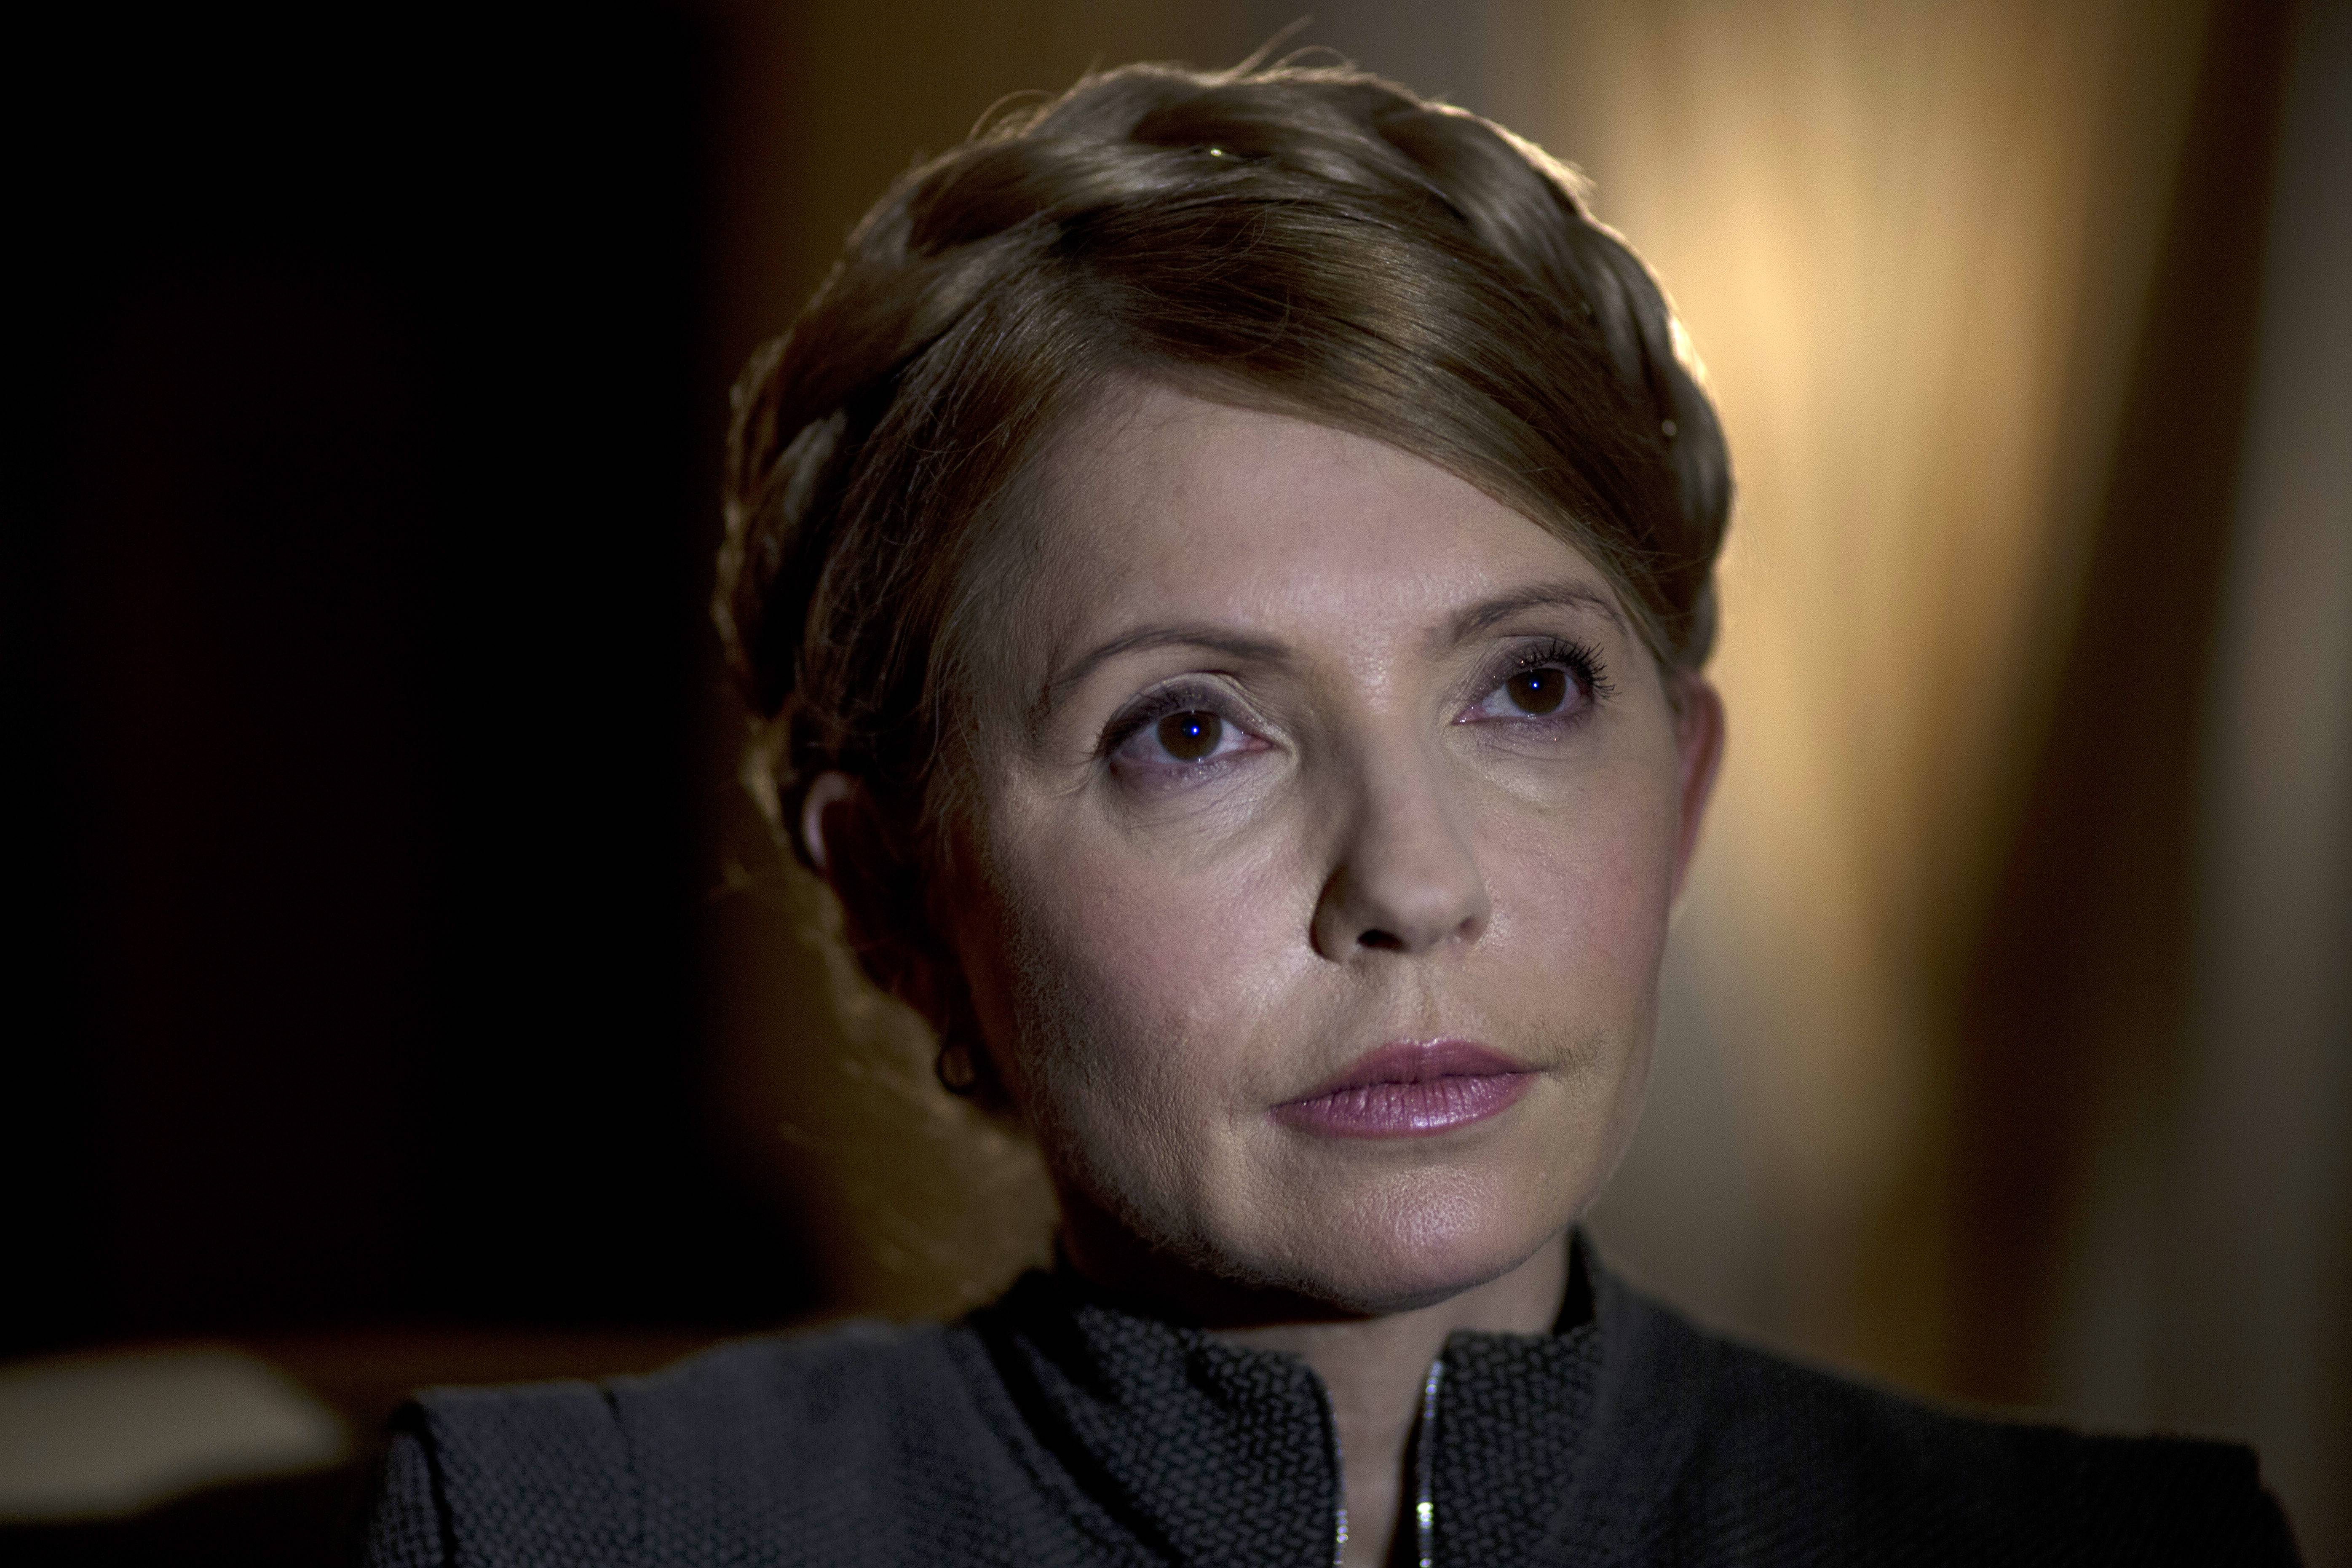 Former Ukrainian Prime Minister Yulia Tymoshenko has announced she will run for presidential elections set for May 25. Tymoshenko, who was released from jail last month following the overthrow of President Viktor Yanukovcyh, said Thursday that she has earned the moral right to say she will combat corruption.